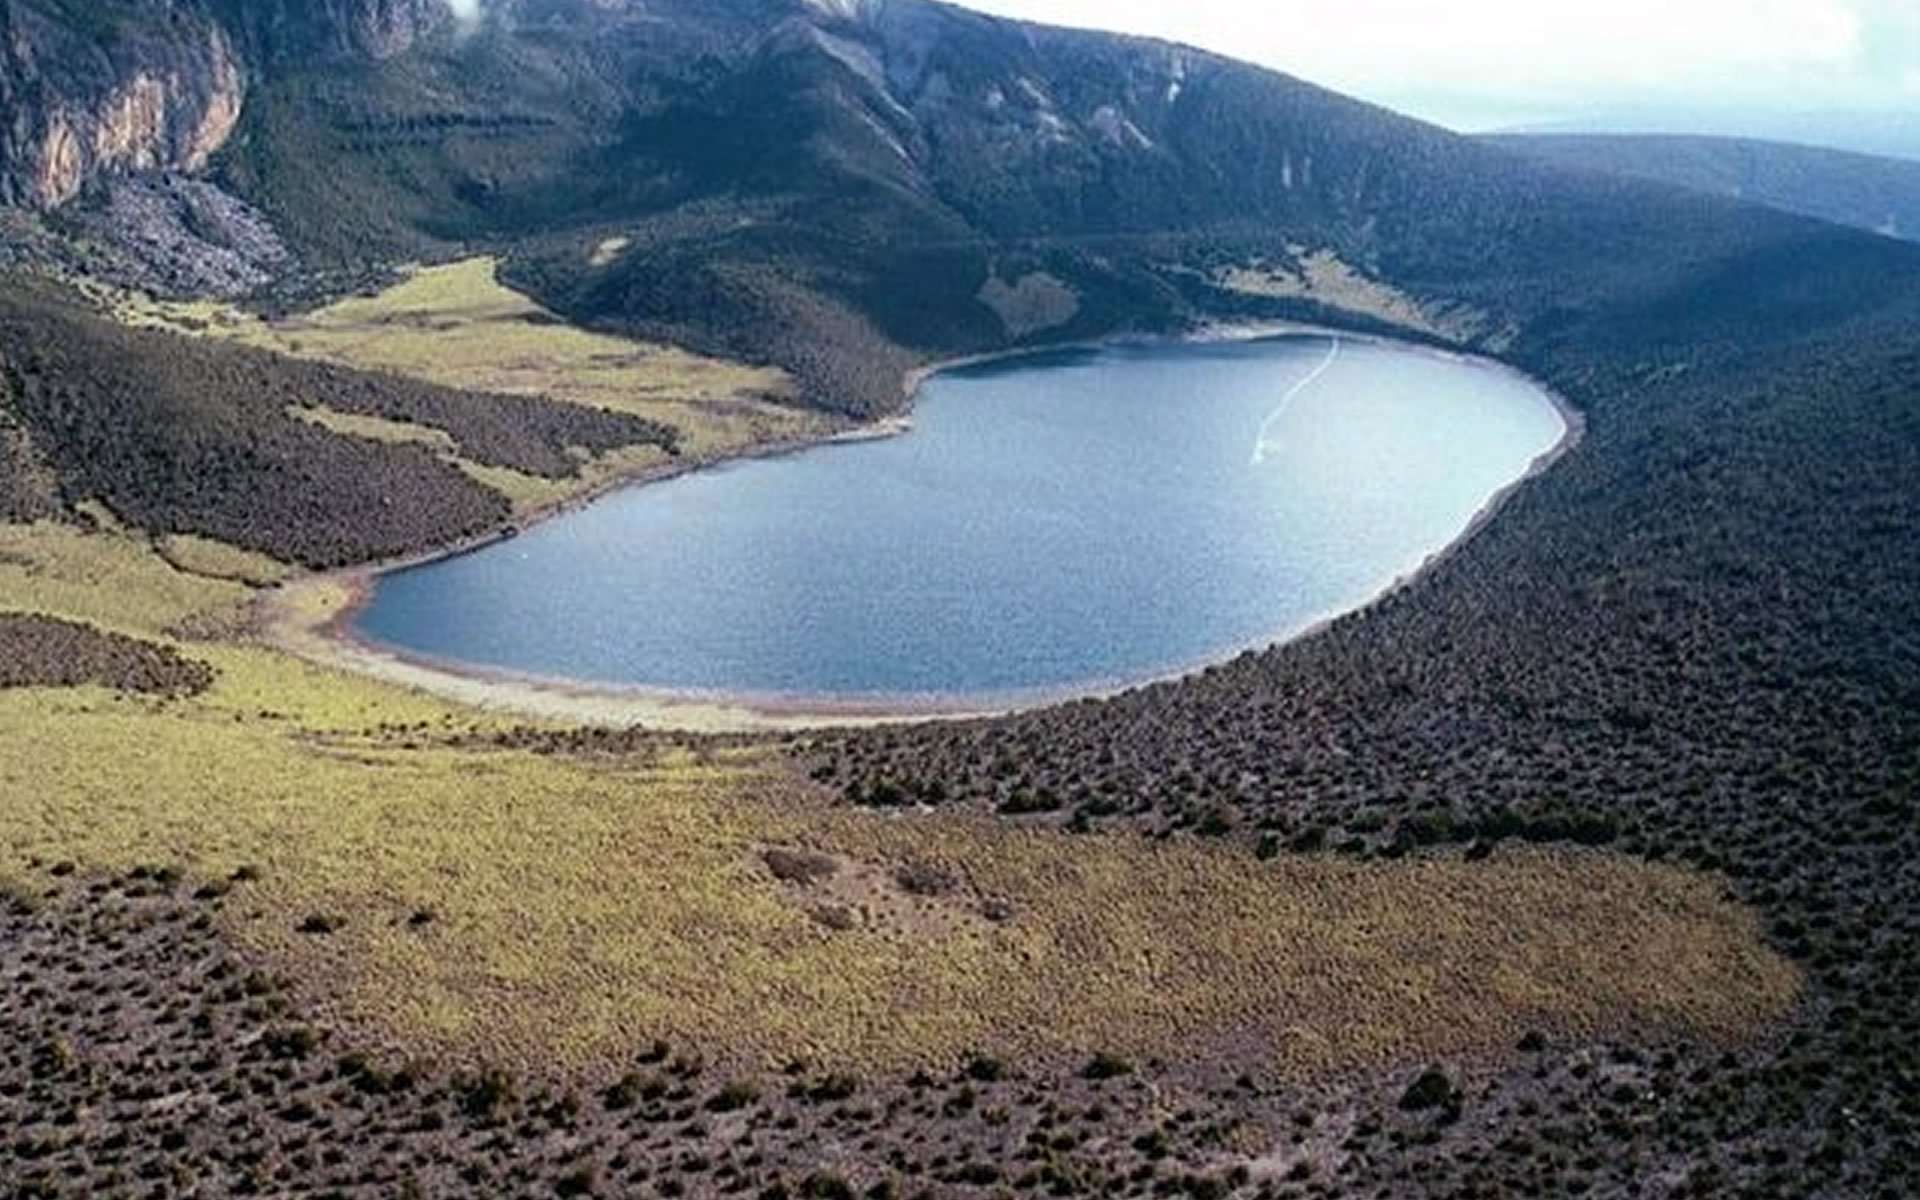 Lake Rutundu sits about 3,100 M (10,000 FT) above Mount Kenya's forest in Mount Kenya National Park. The lake is a residence for rare birdlife and vegetation.